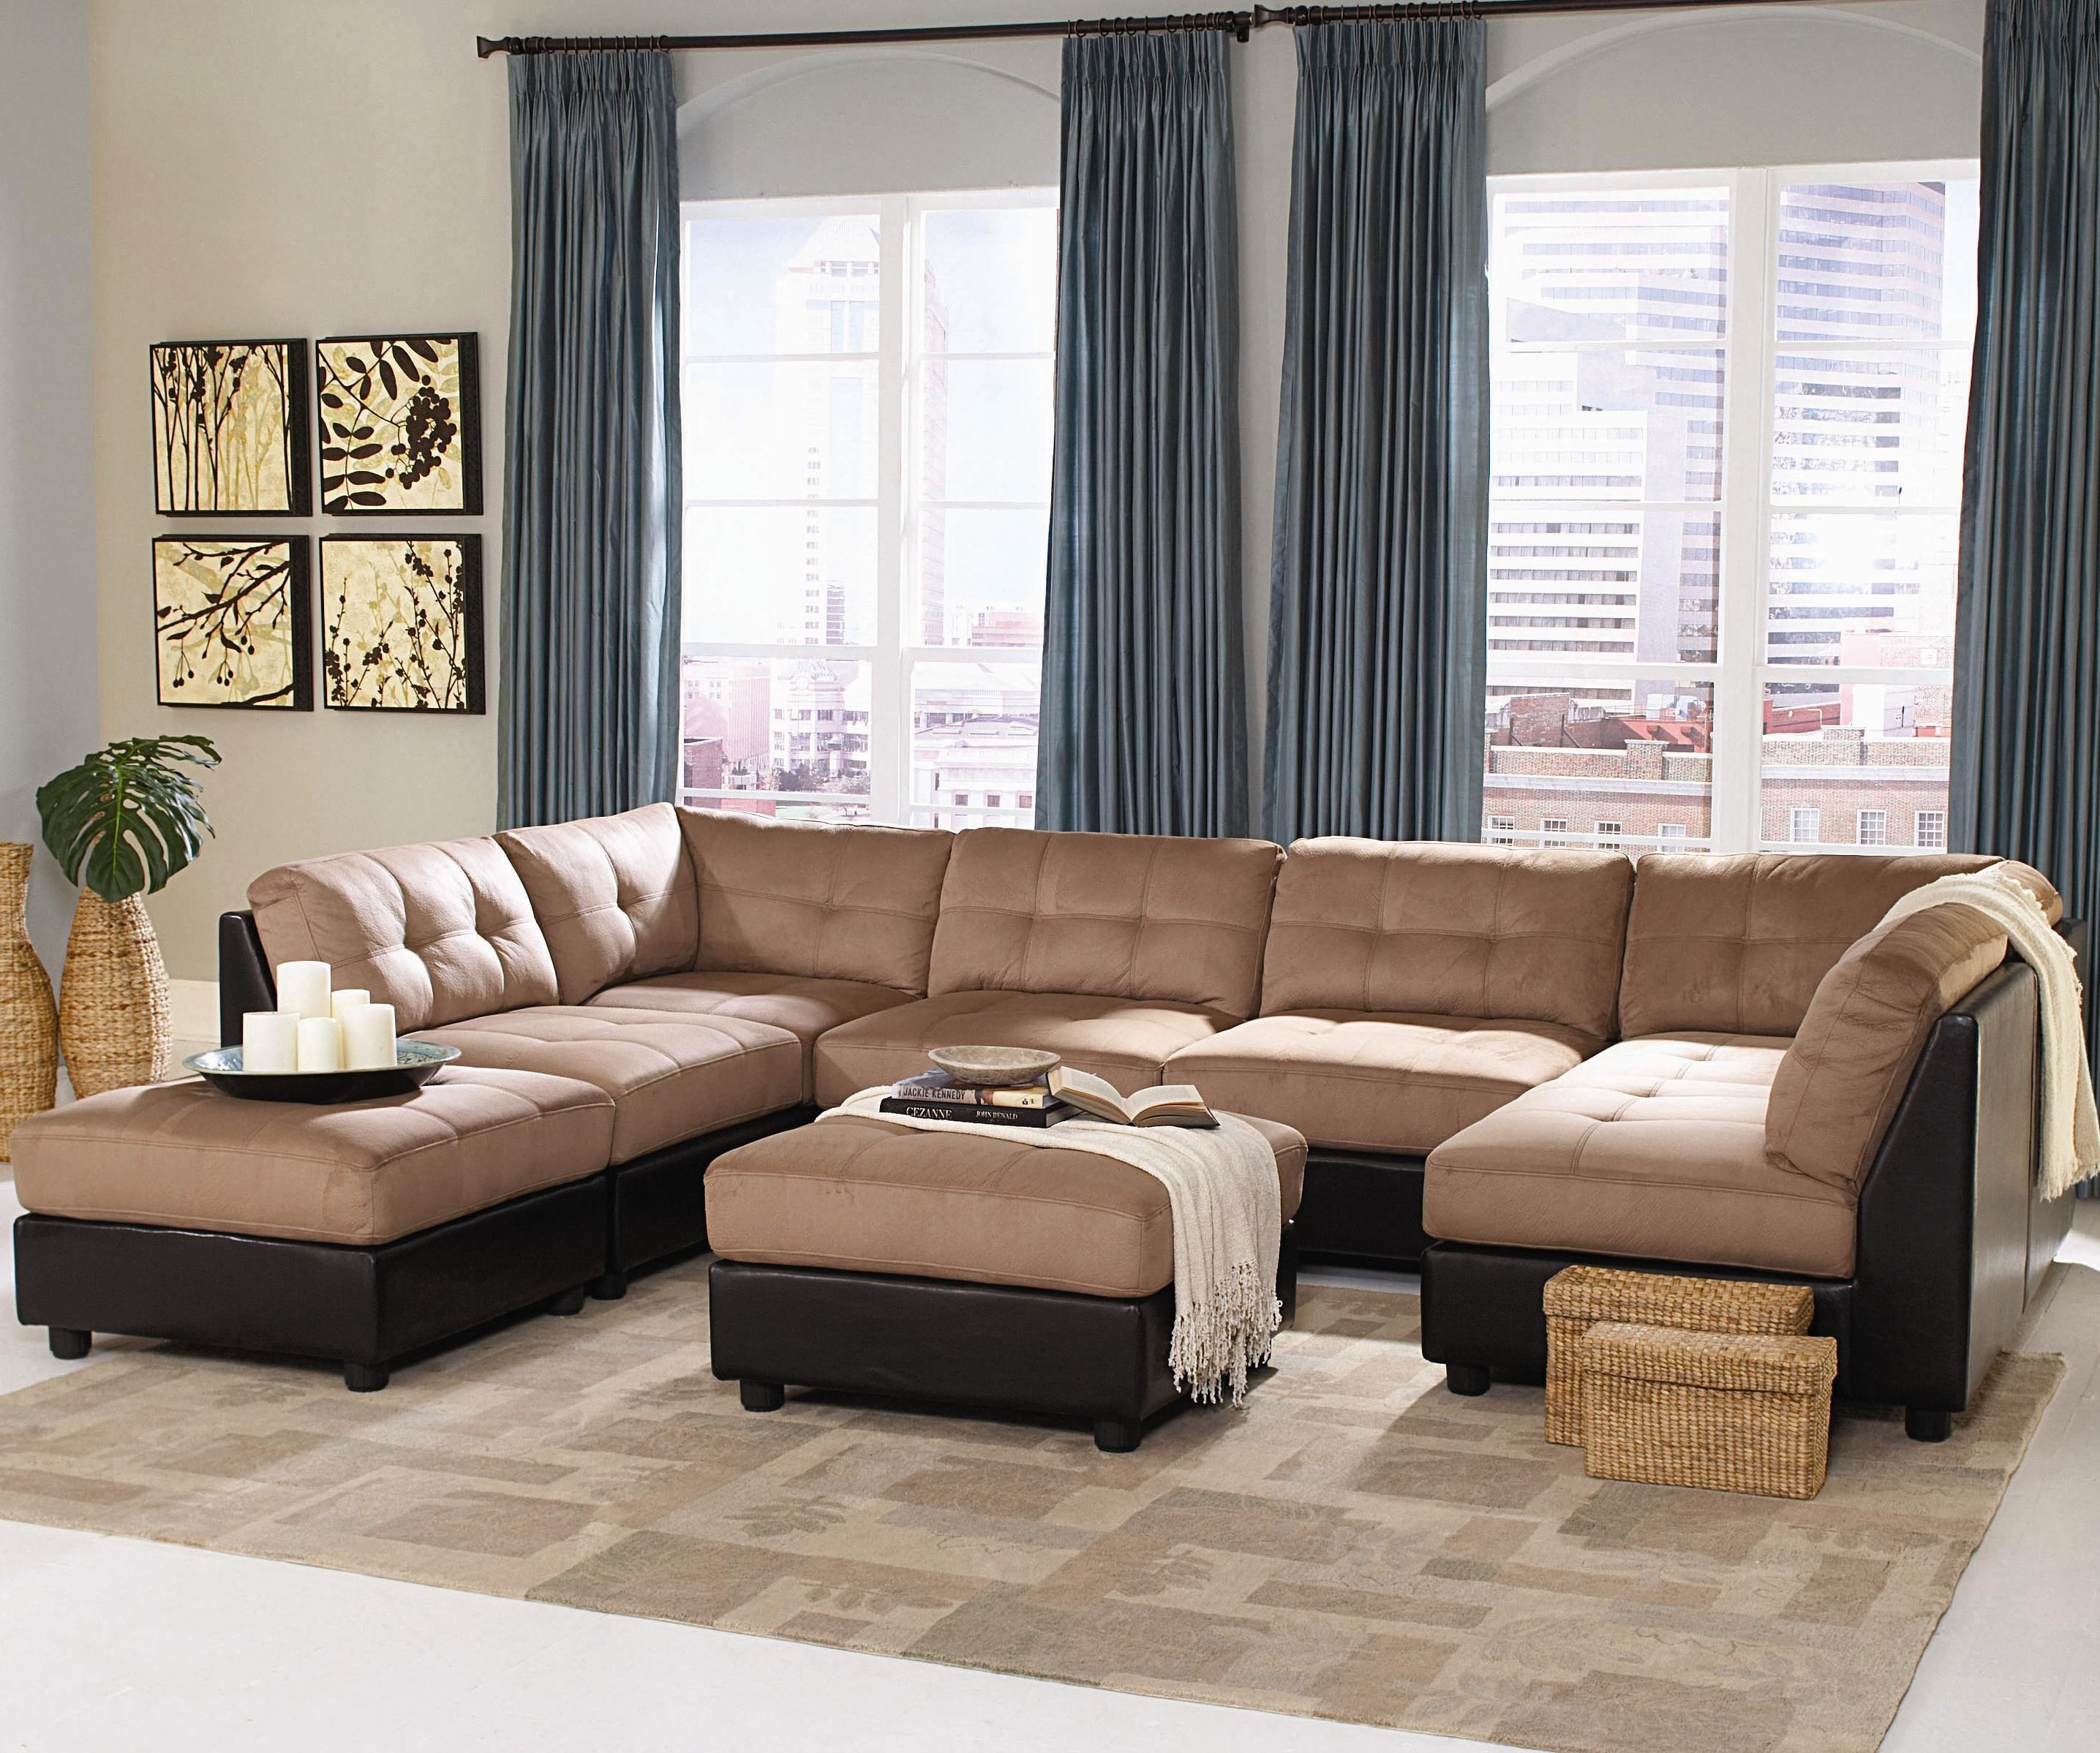 Living Room Leather Sectional Sets Set 3 Piece | Eiforces Regarding Traditional Sectional Sofas Living Room Furniture (View 10 of 20)